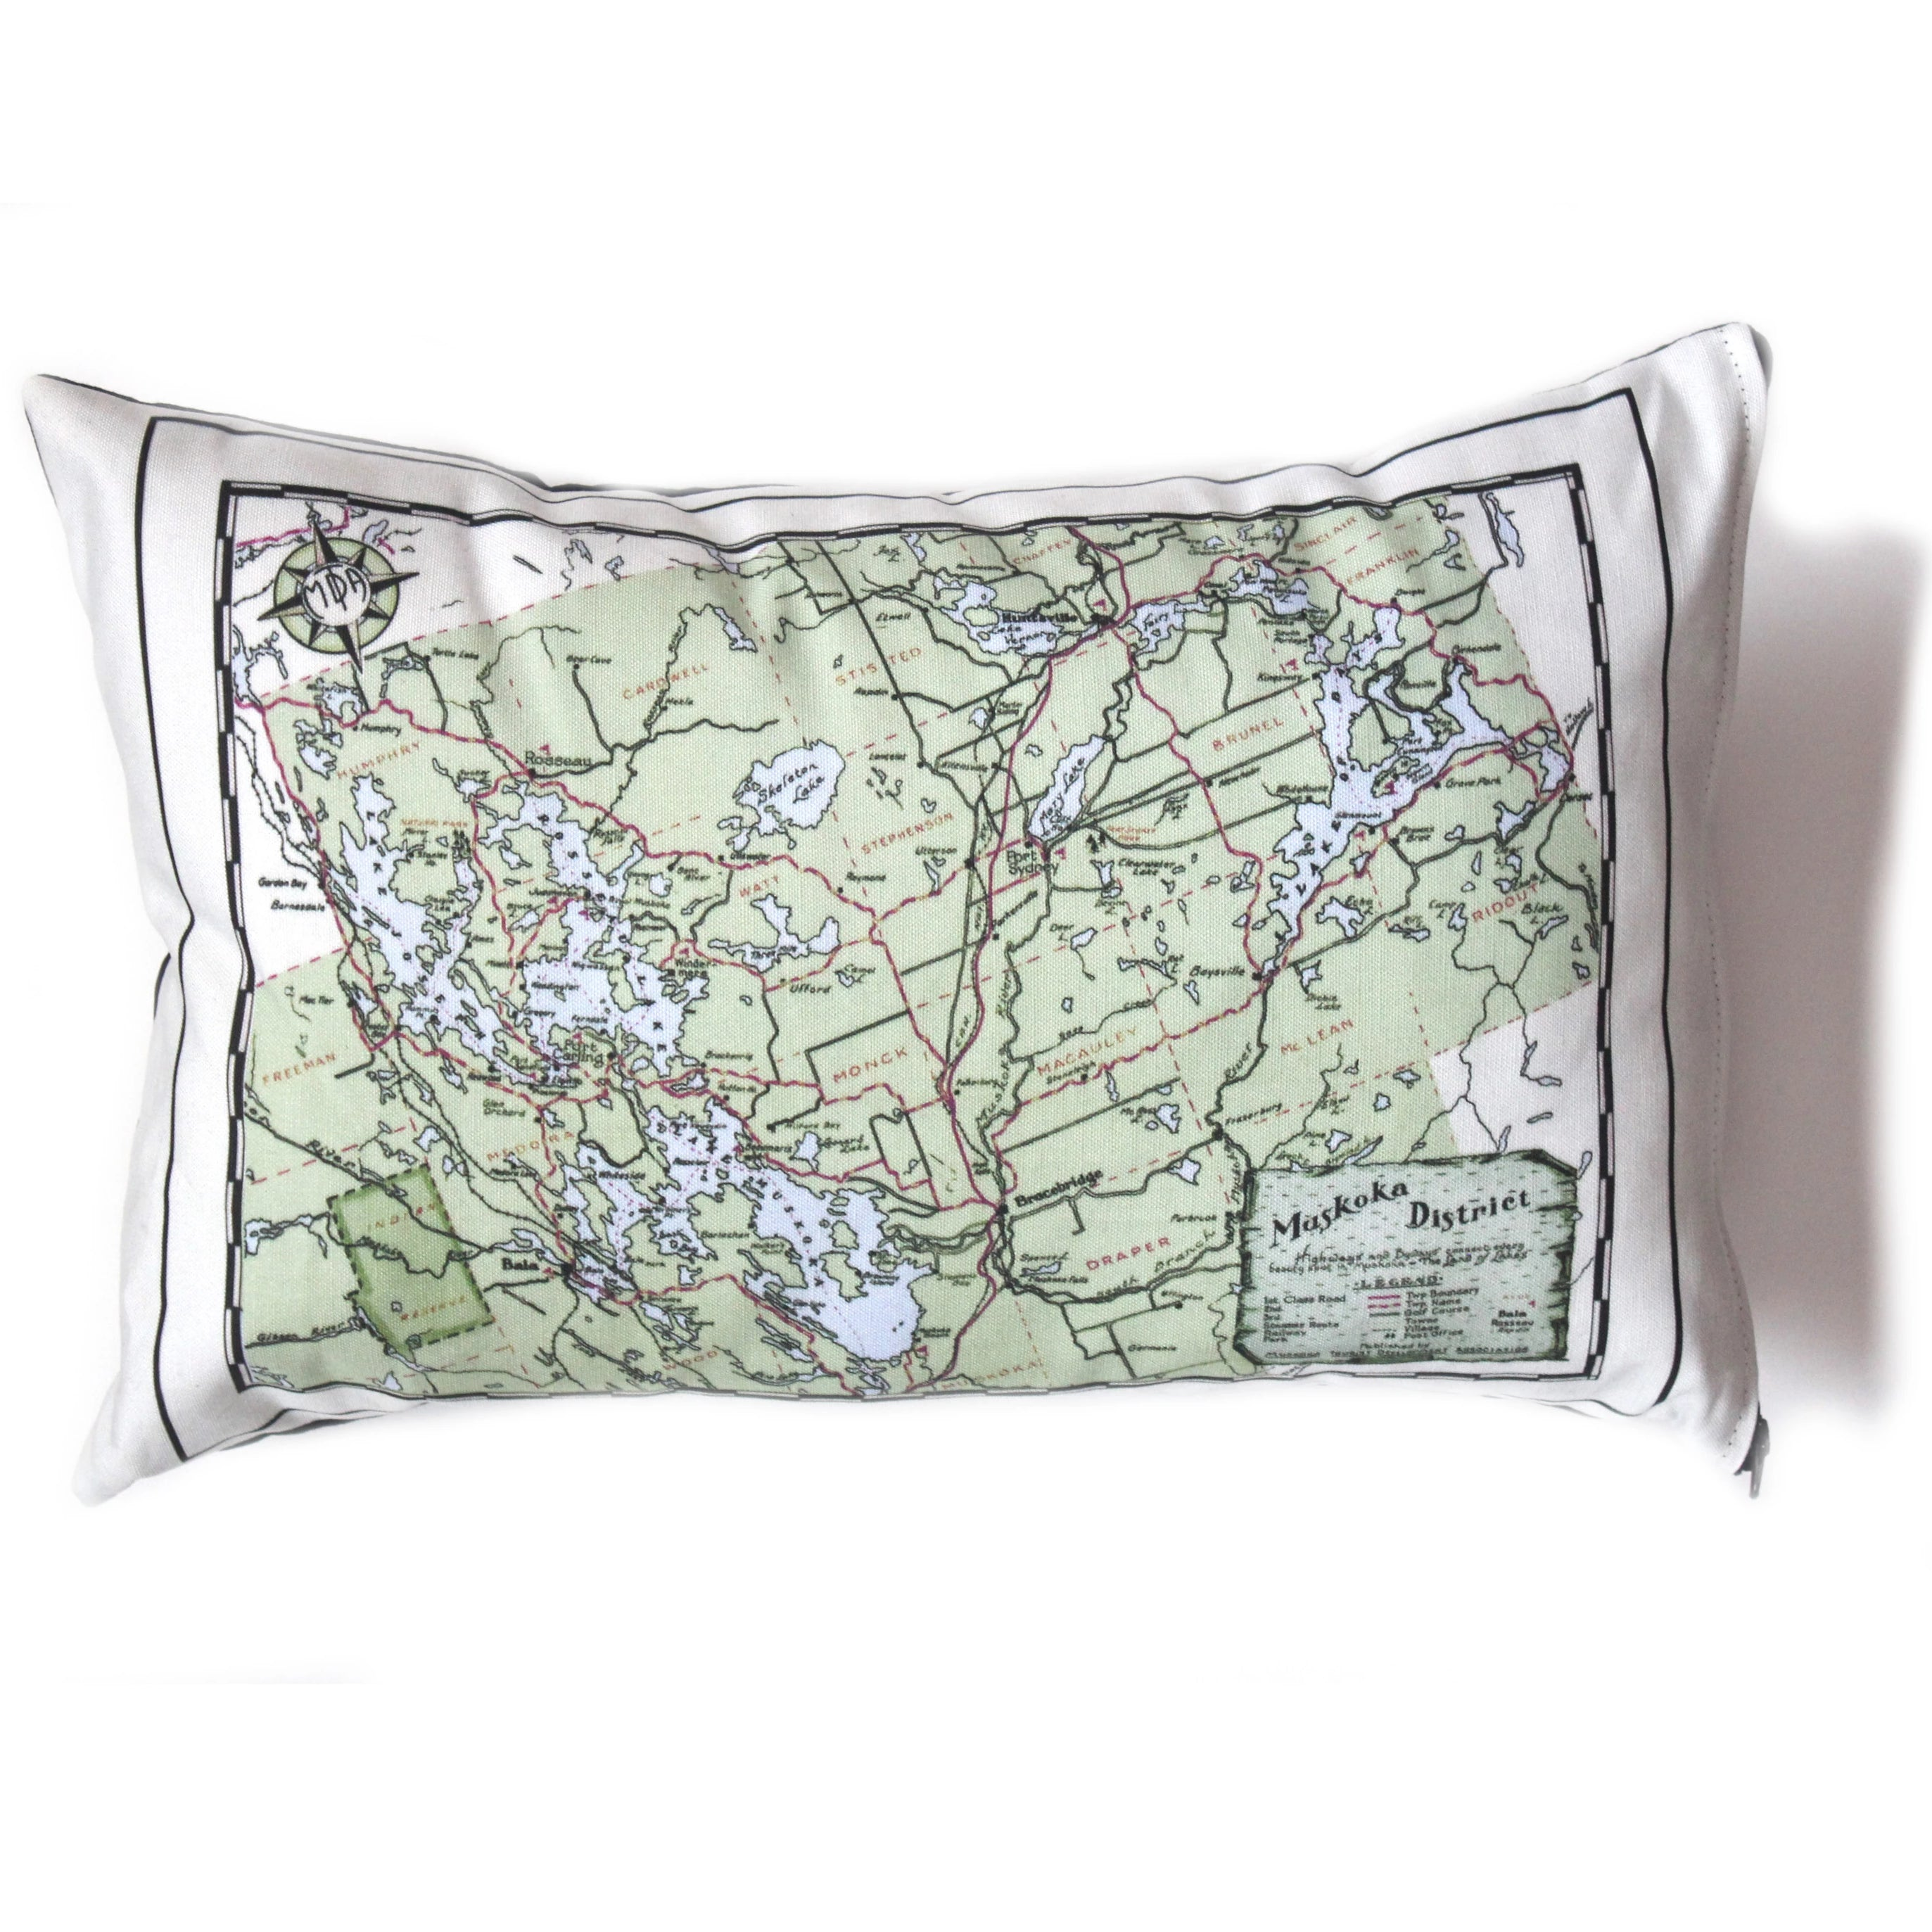 Muskoka District Map Pillow - Vintage Map Co.